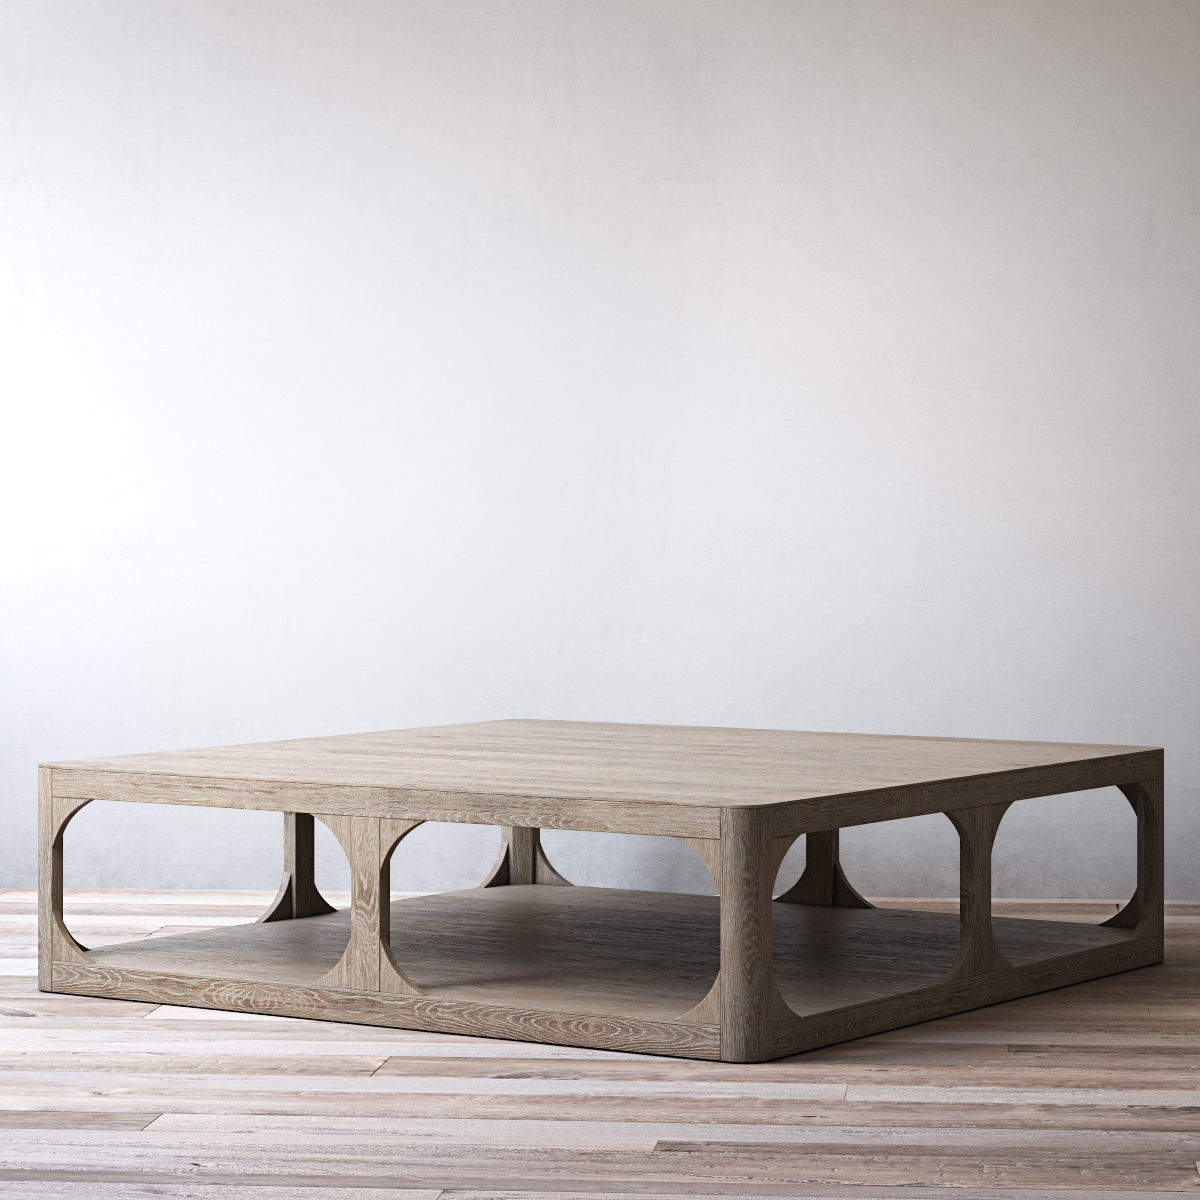 Exceptionnel ... Rh Martens Square Coffee Table 3d Model Max Obj Mtl 3ds Fbx Mat 4 ...